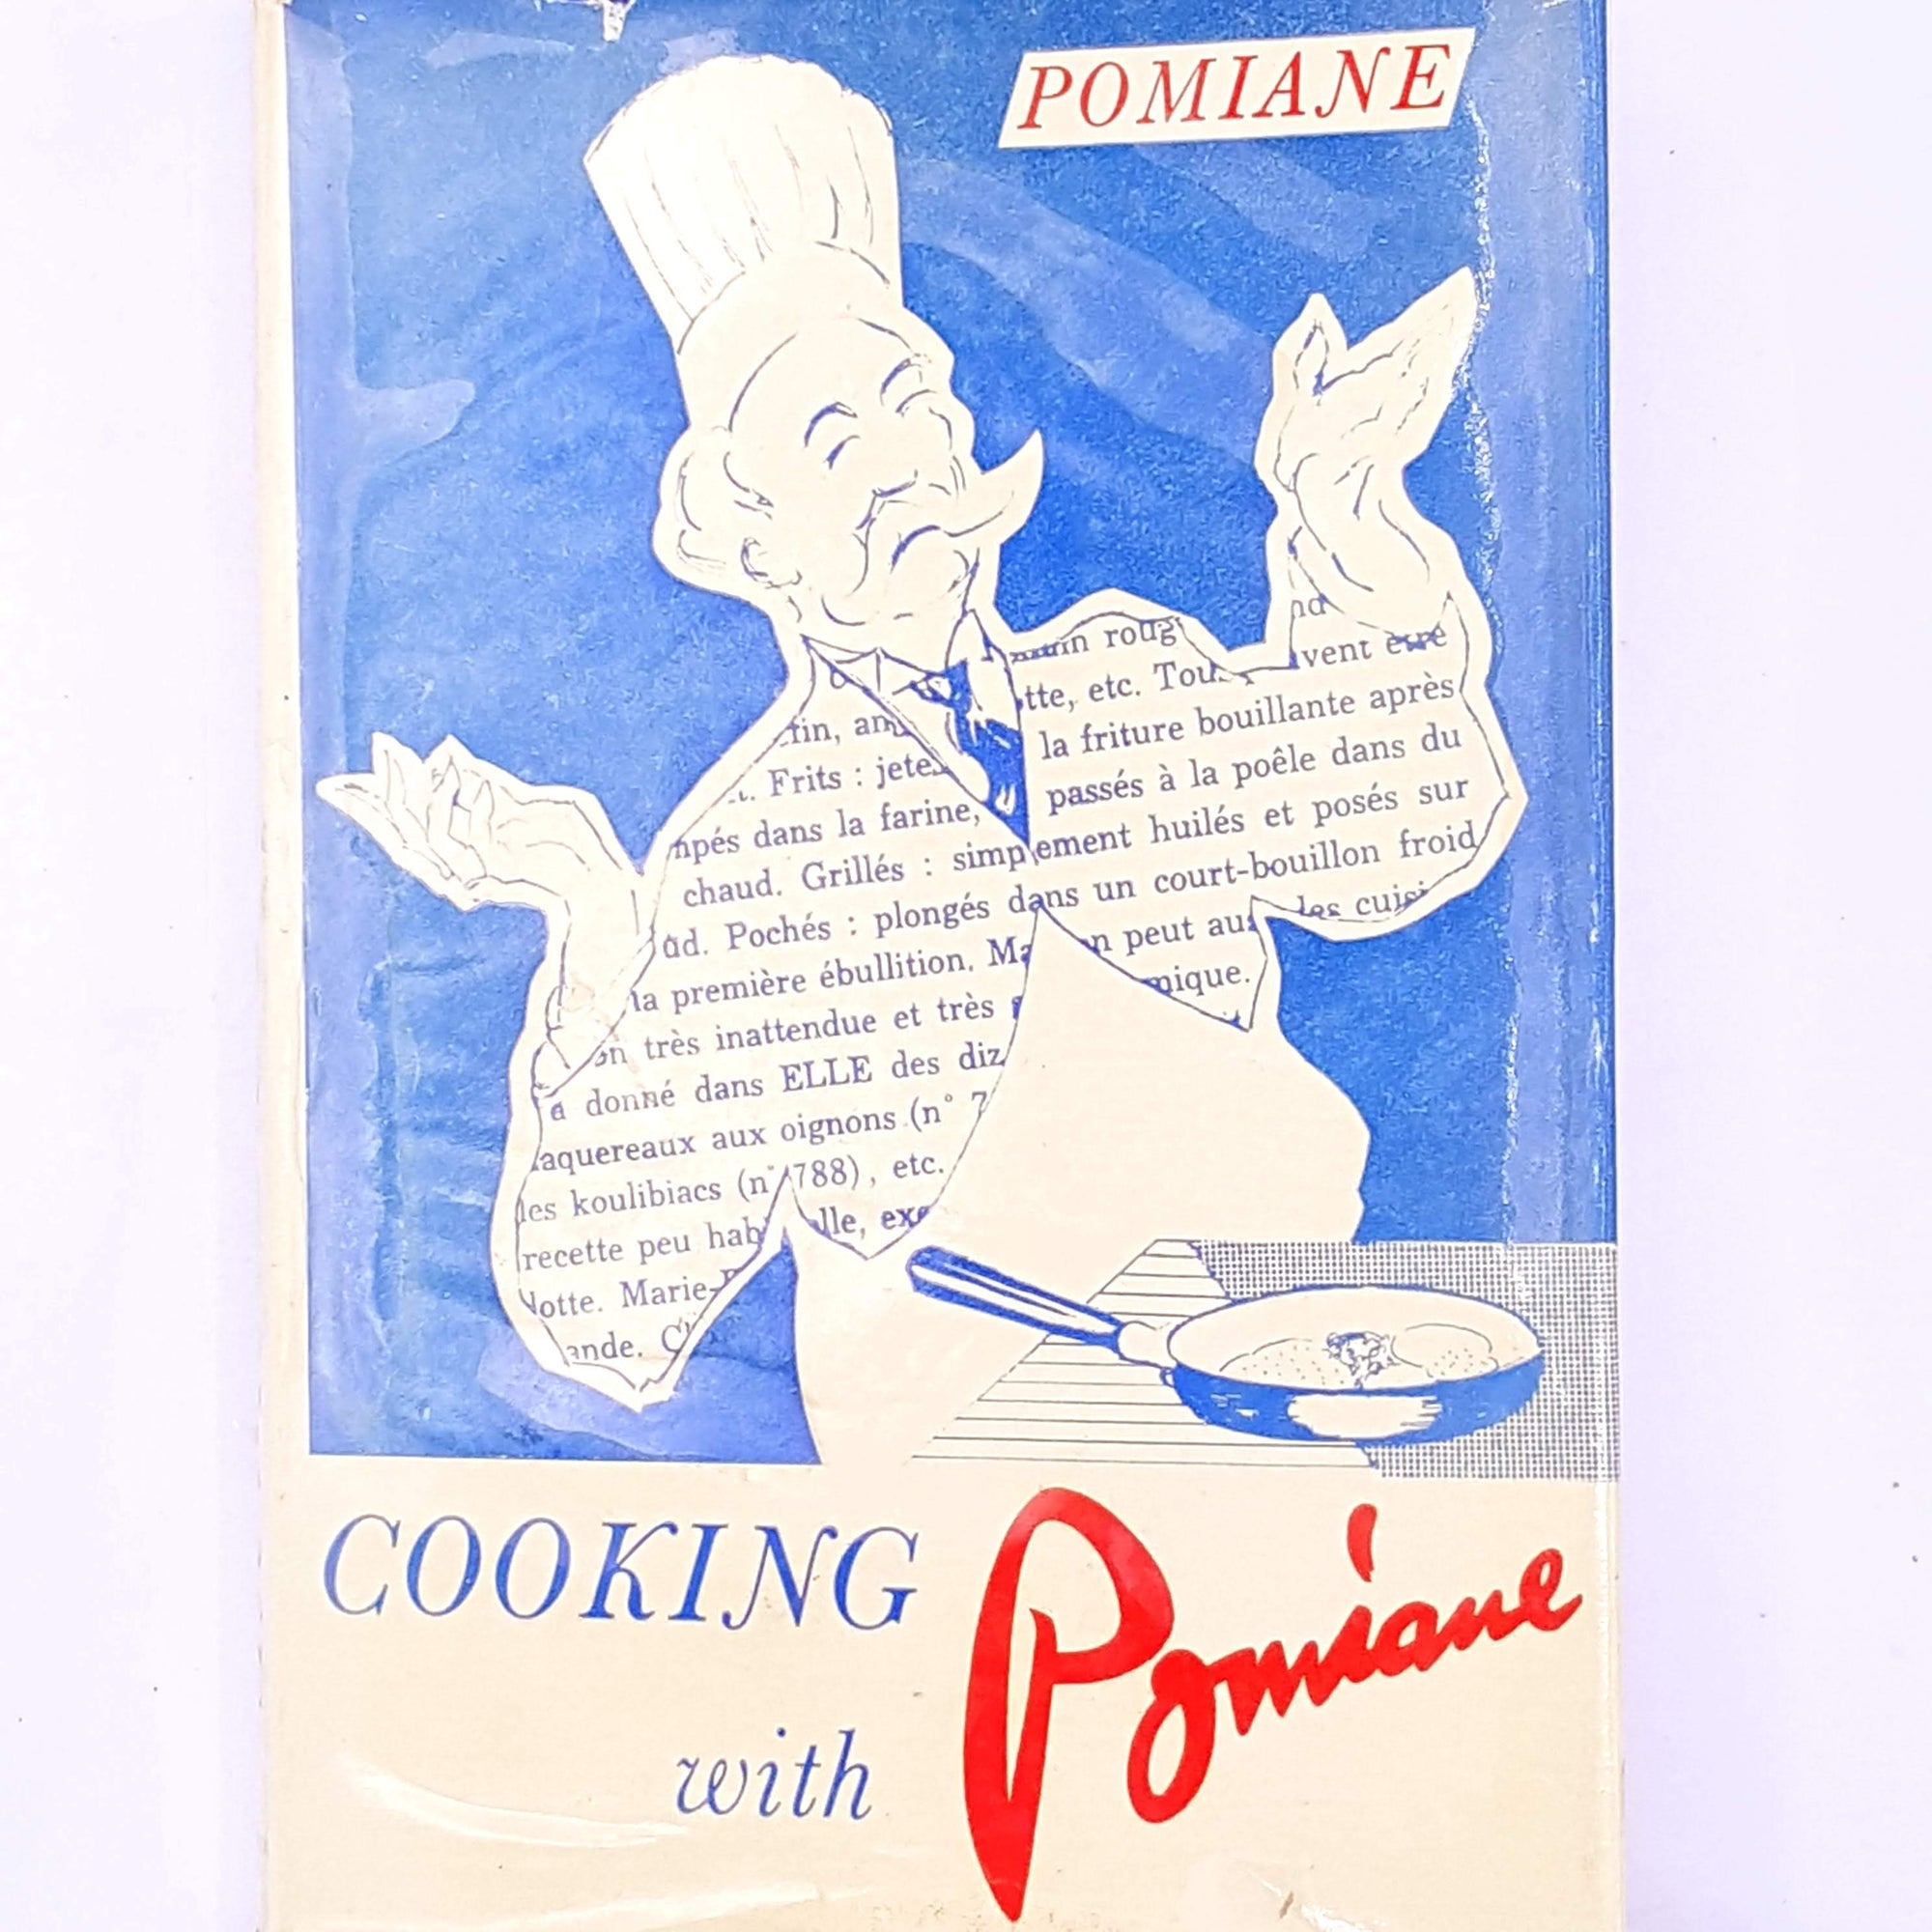 Cooking with Pomiane, Pomiane